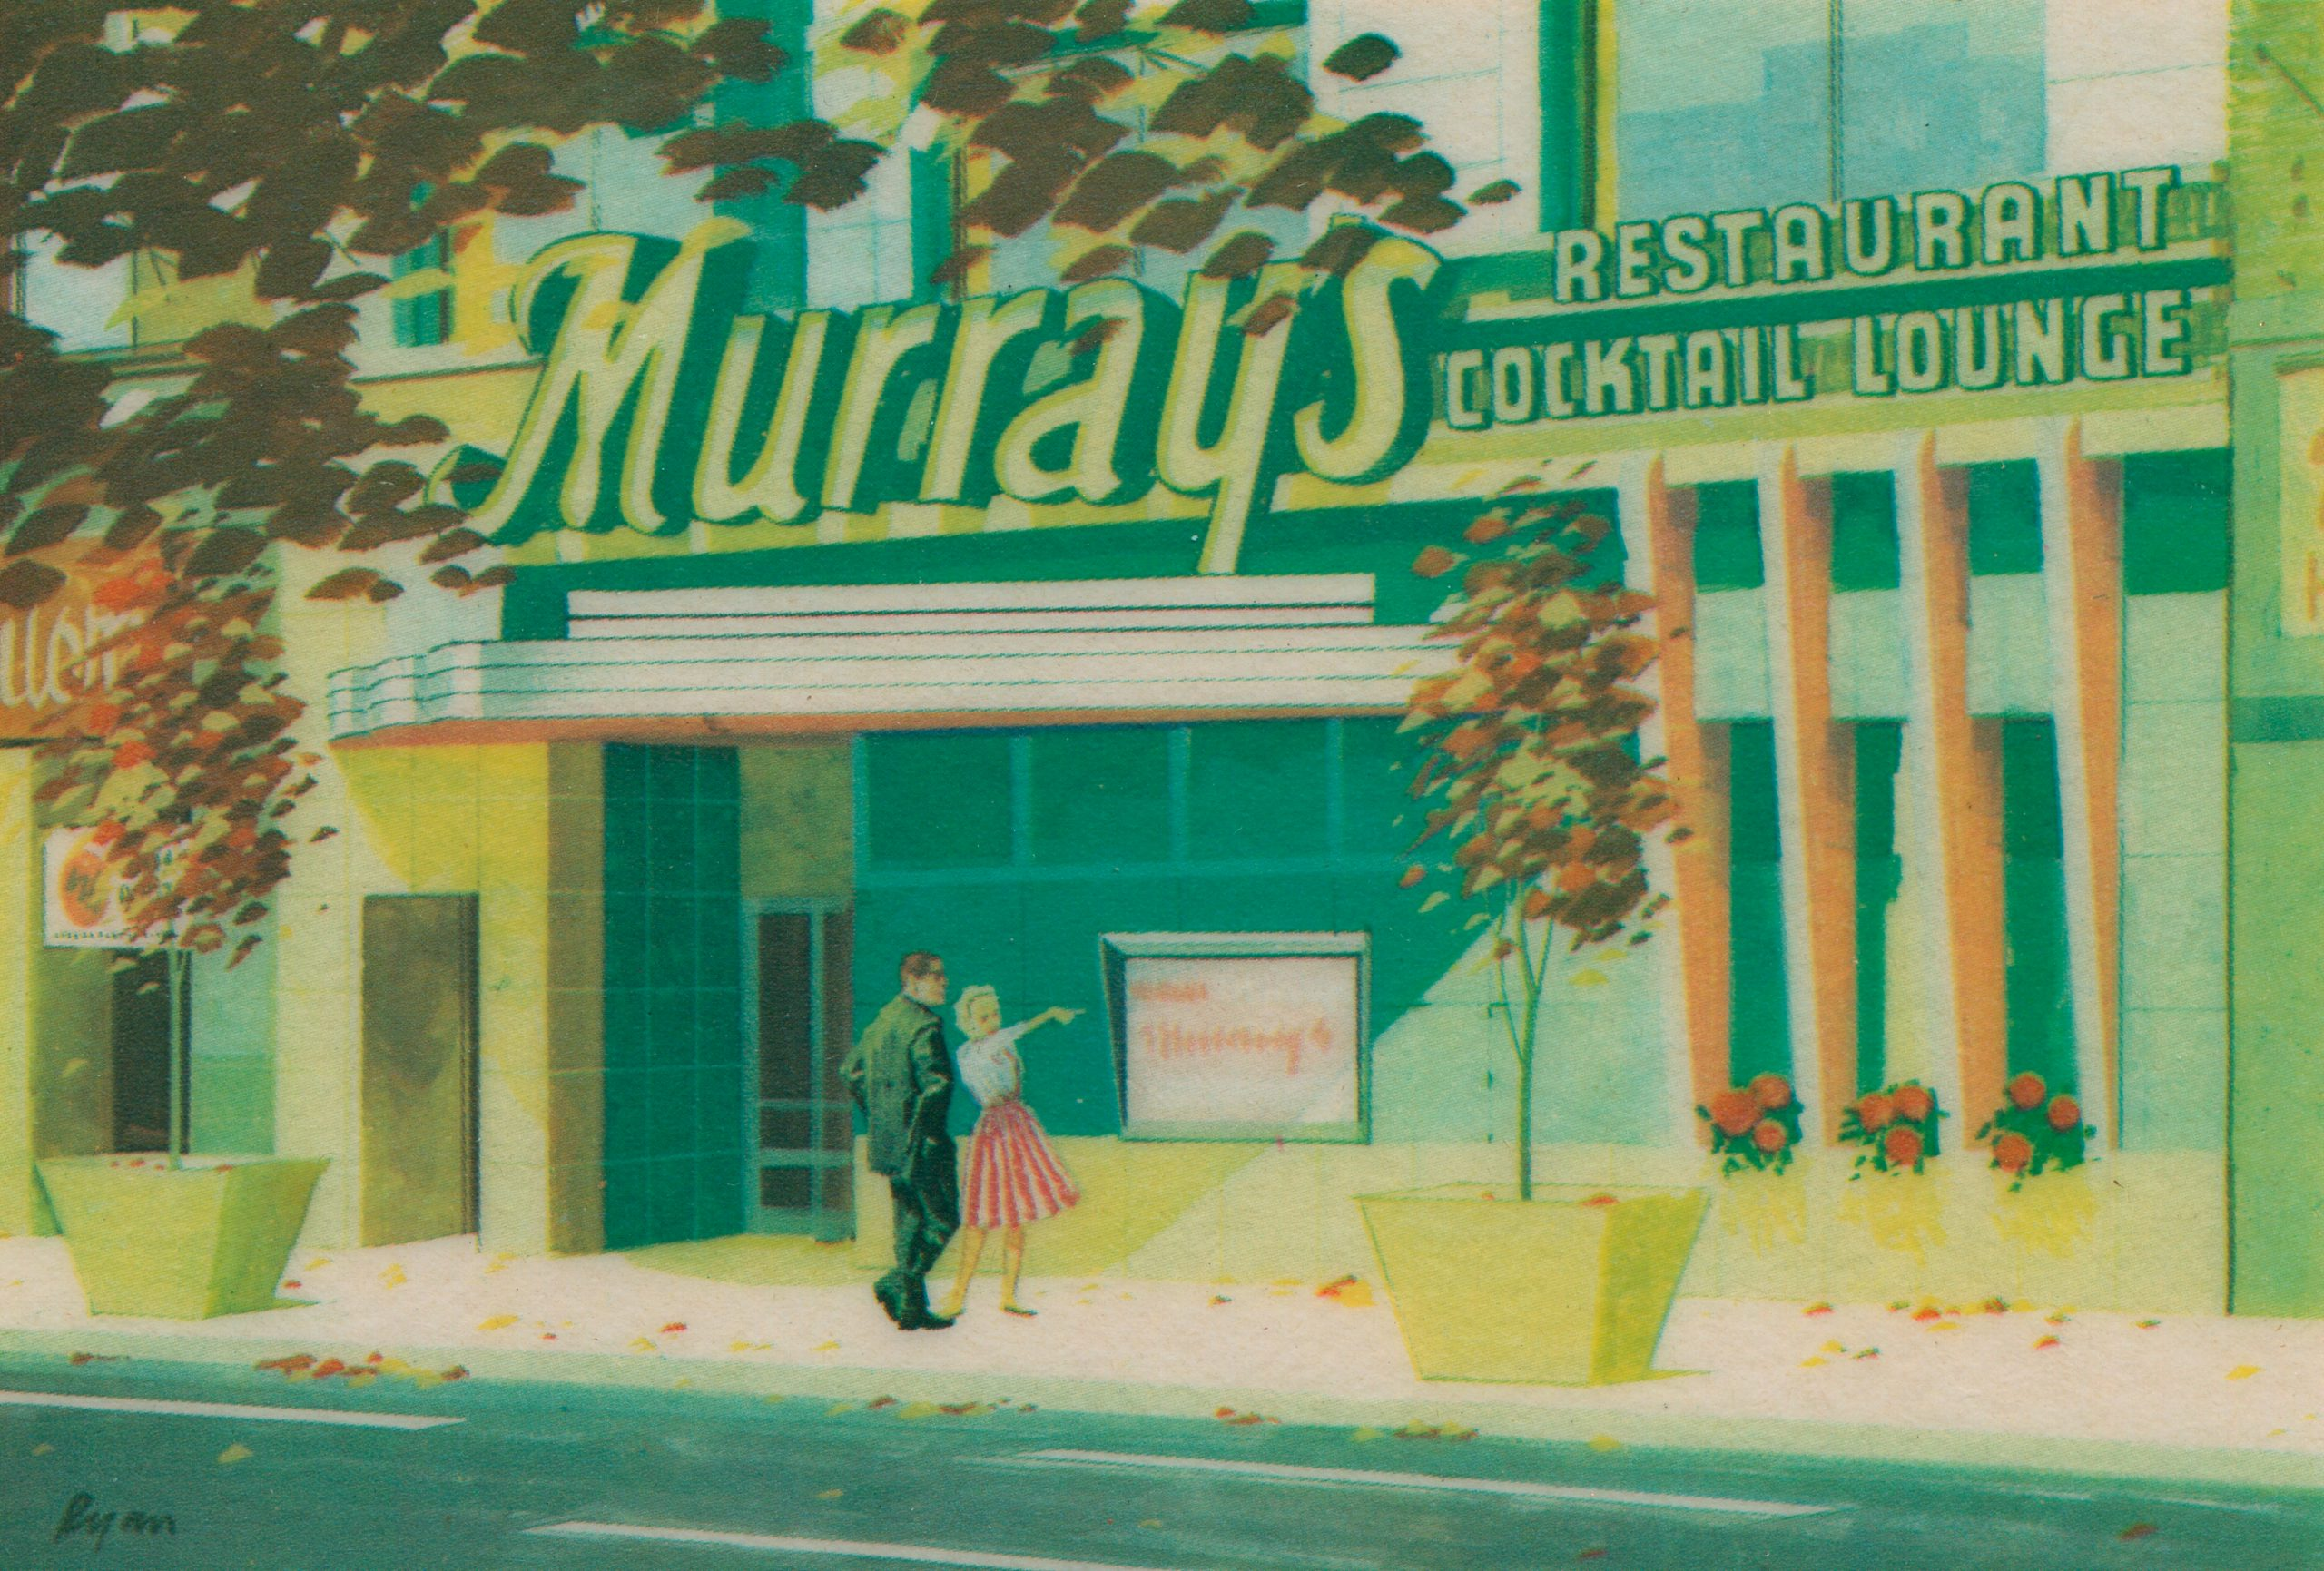 Murray's (Archival Project)